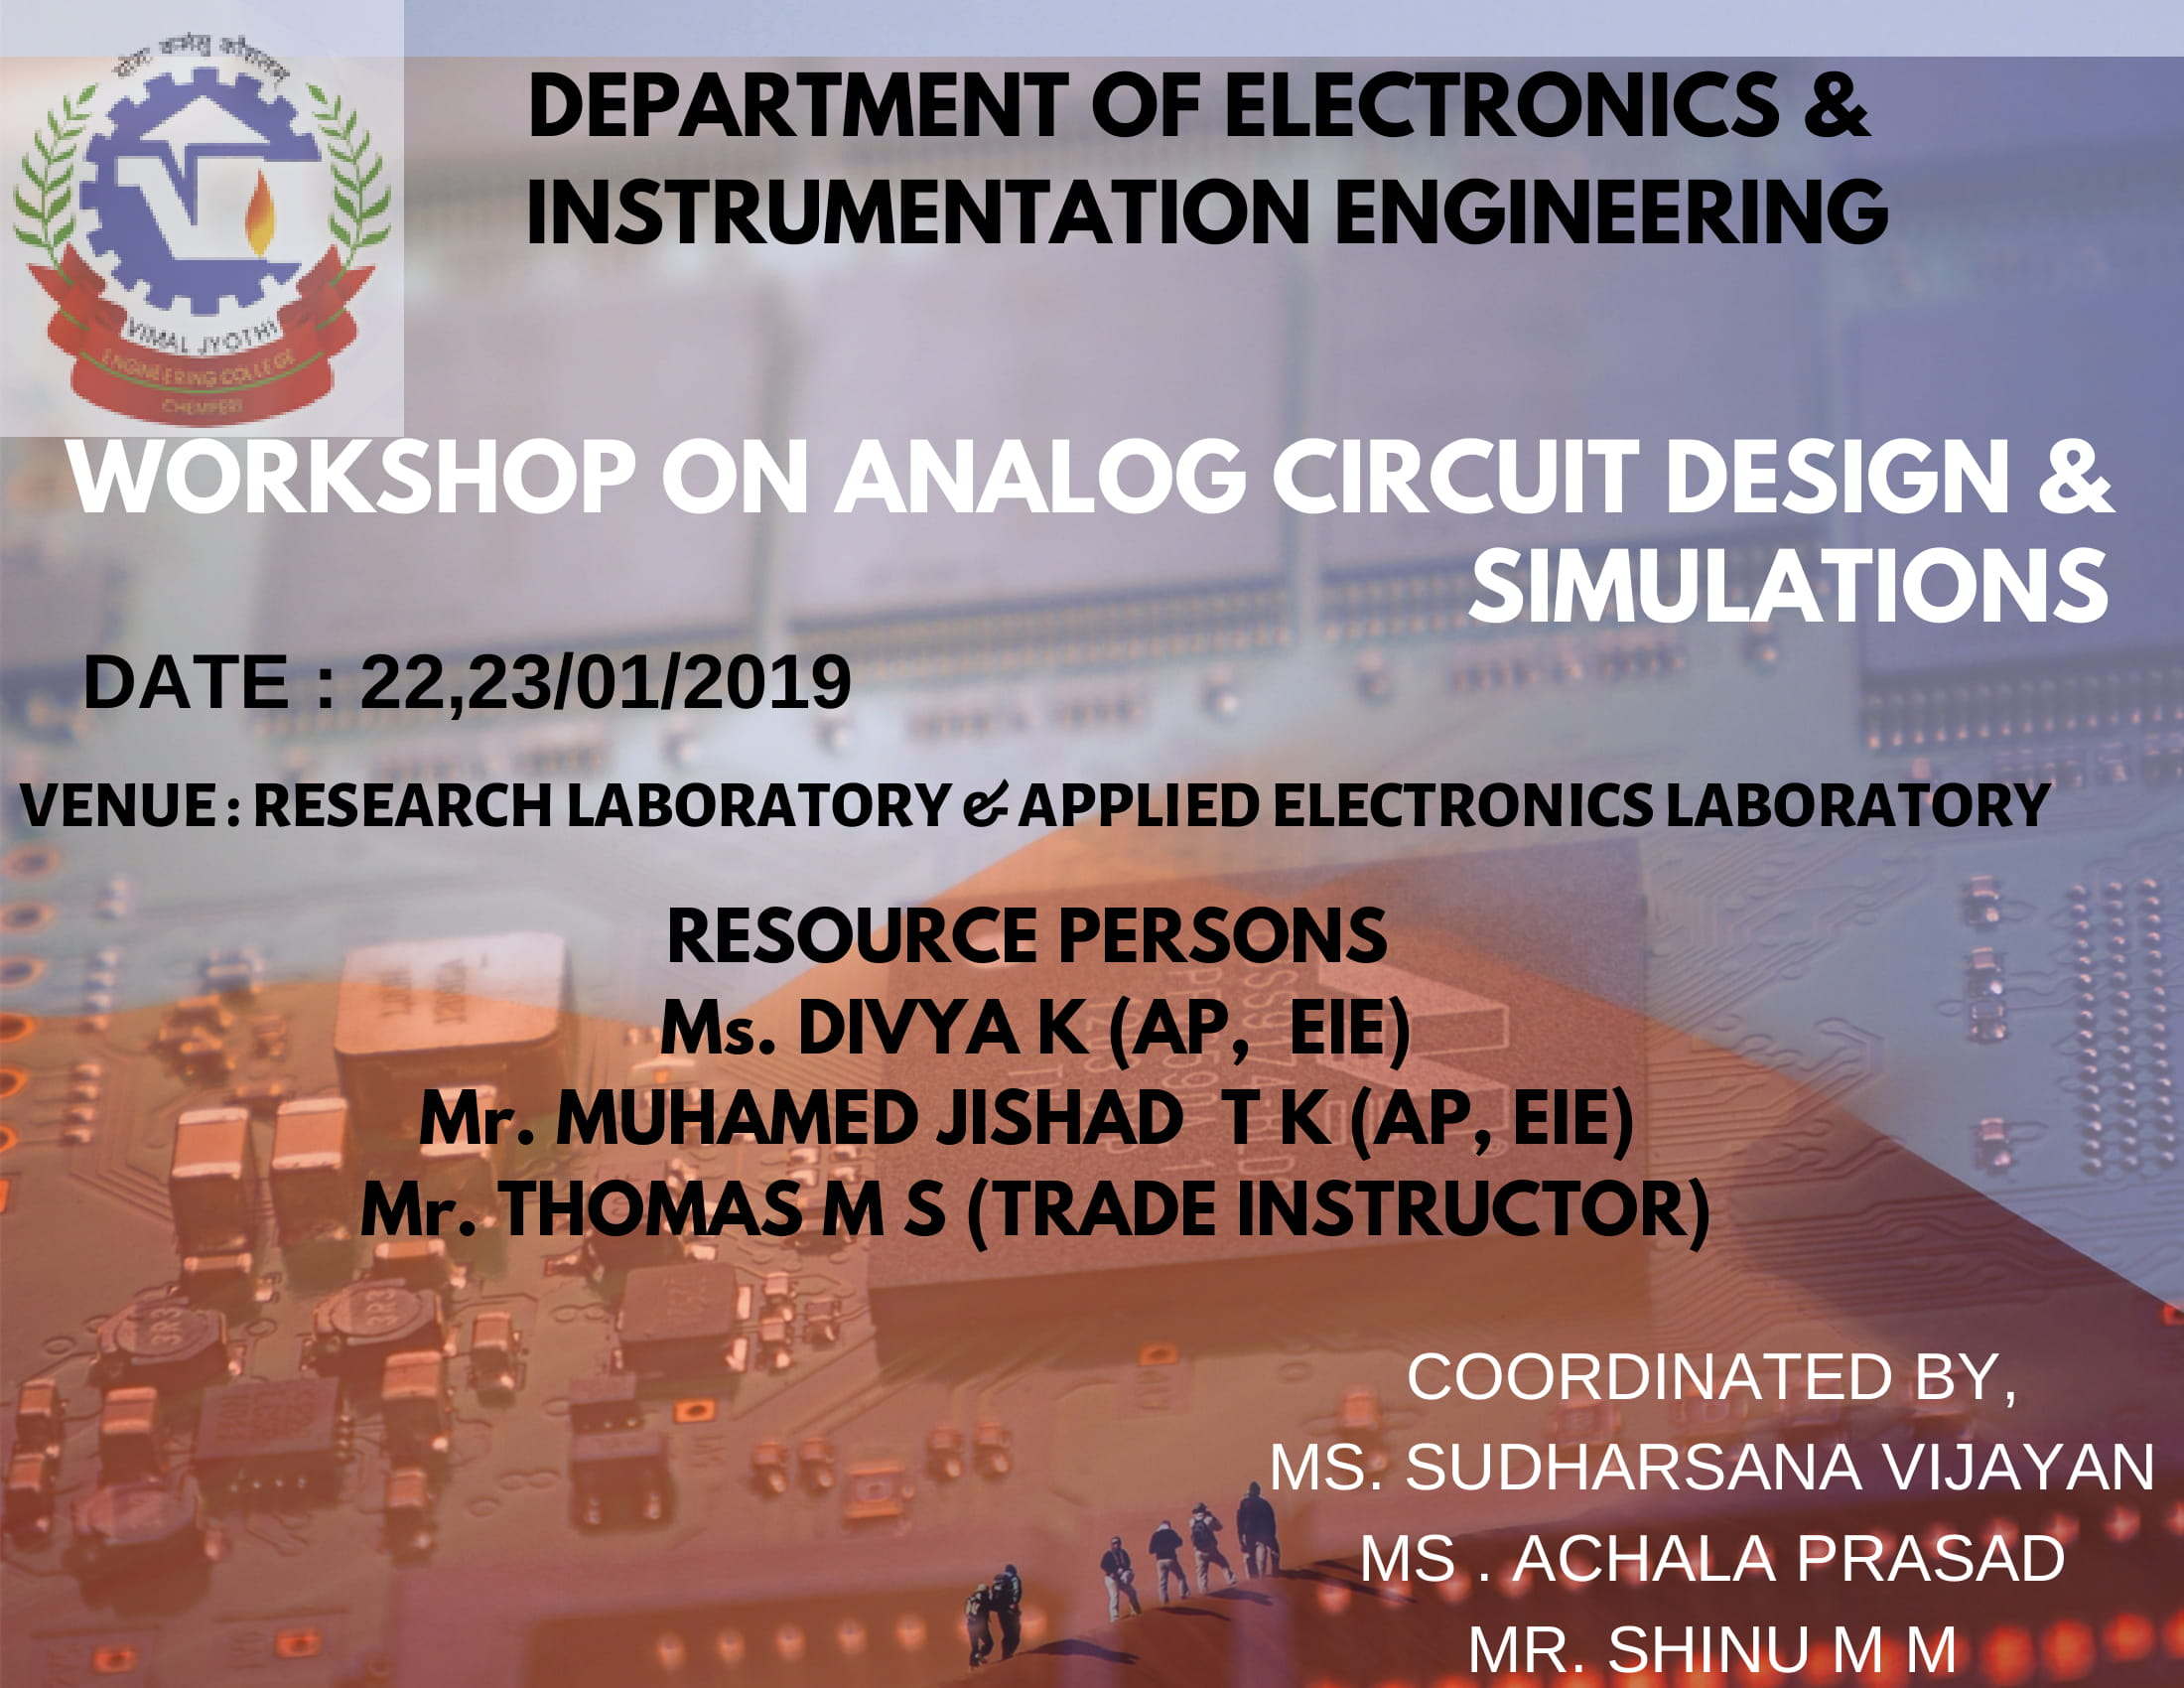 WORKSHOP ON ANALOG CIRCUIT DESIGN